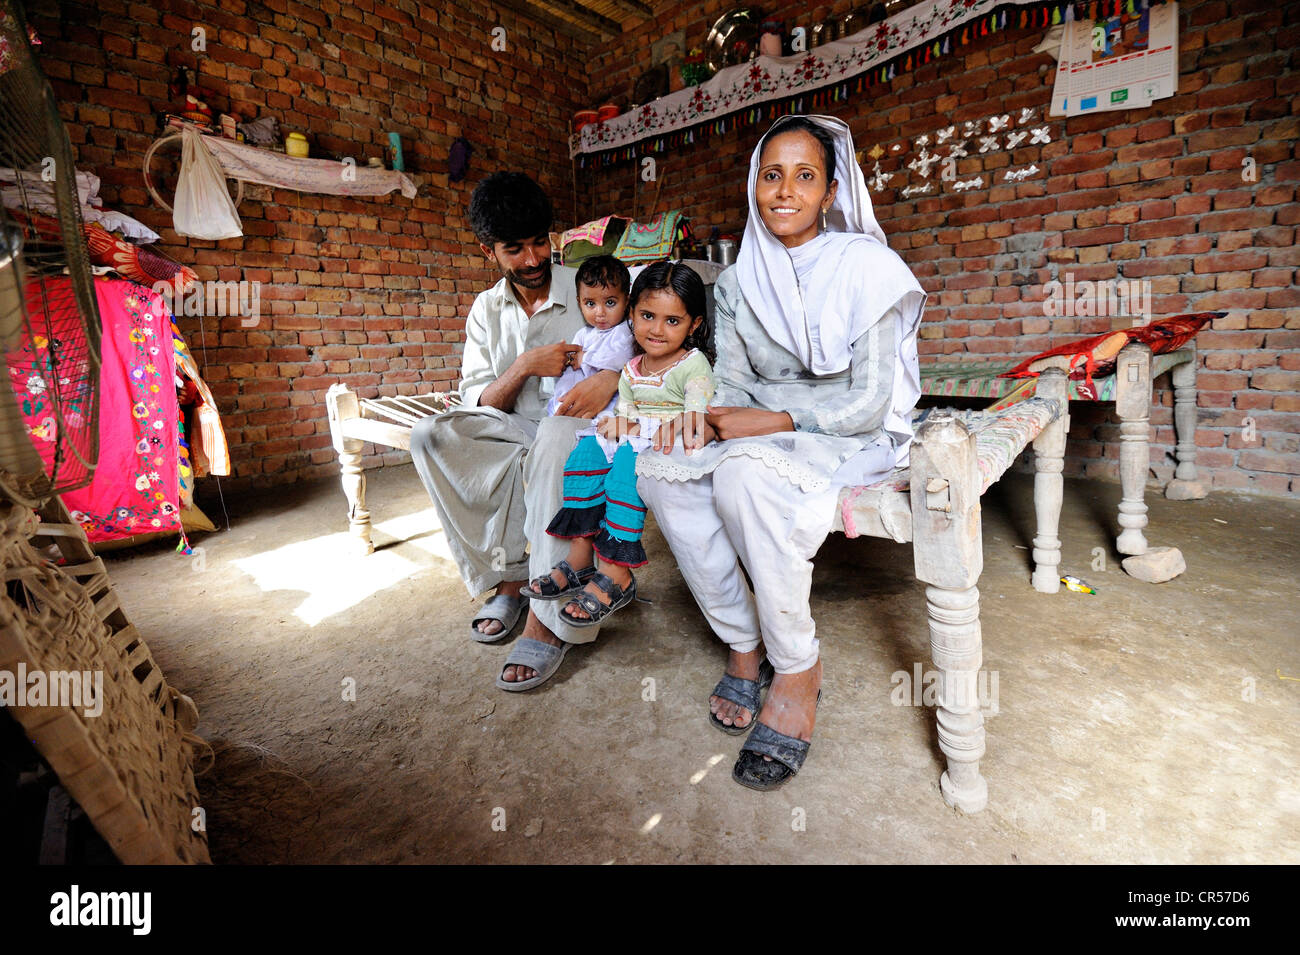 Family sitting in a new house made of bricks that they received from a relief organisation, their old house was Stock Photo